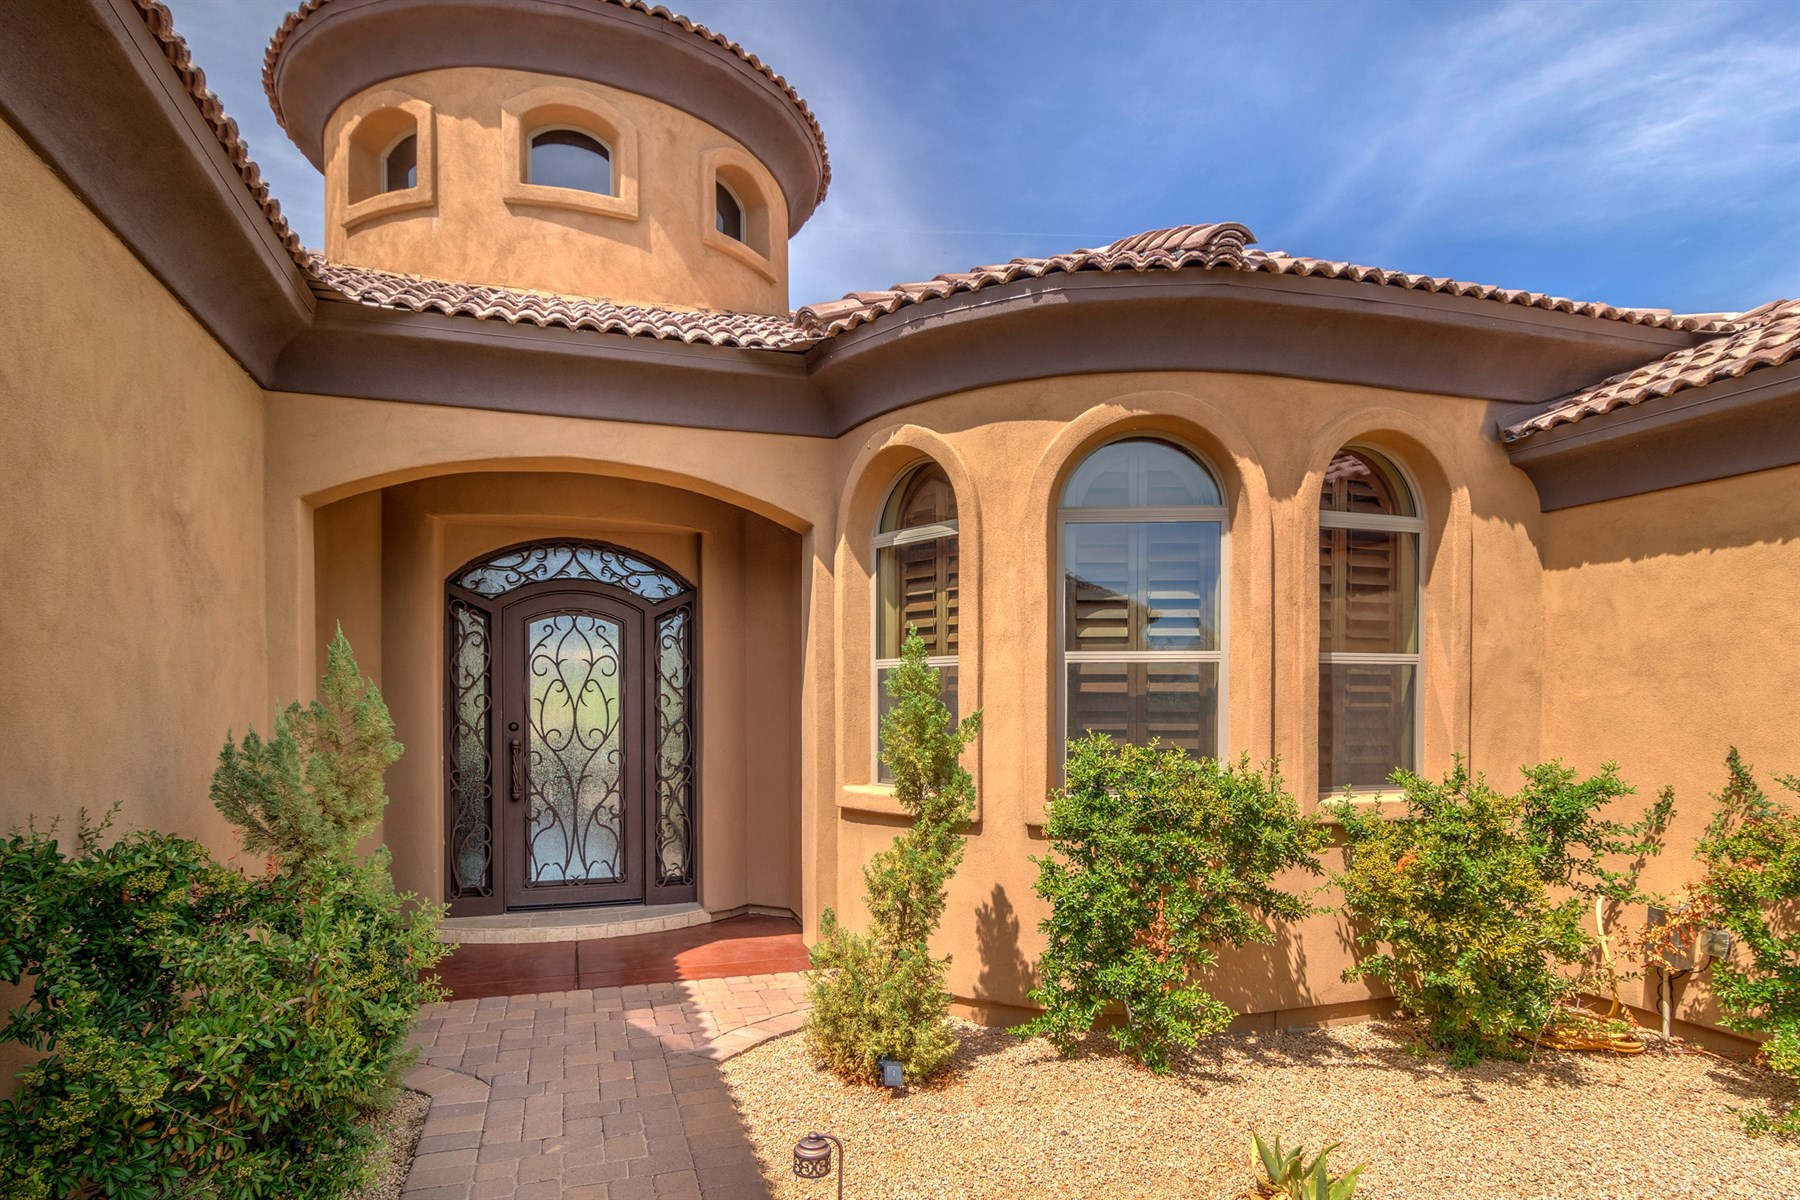 Single Family Home for Sale at Beautiful 4,000 SF Home in Mirabel Villge - North Scottsdale 9810 E Winter Sun Drive Scottsdale, Arizona, 85262 United States